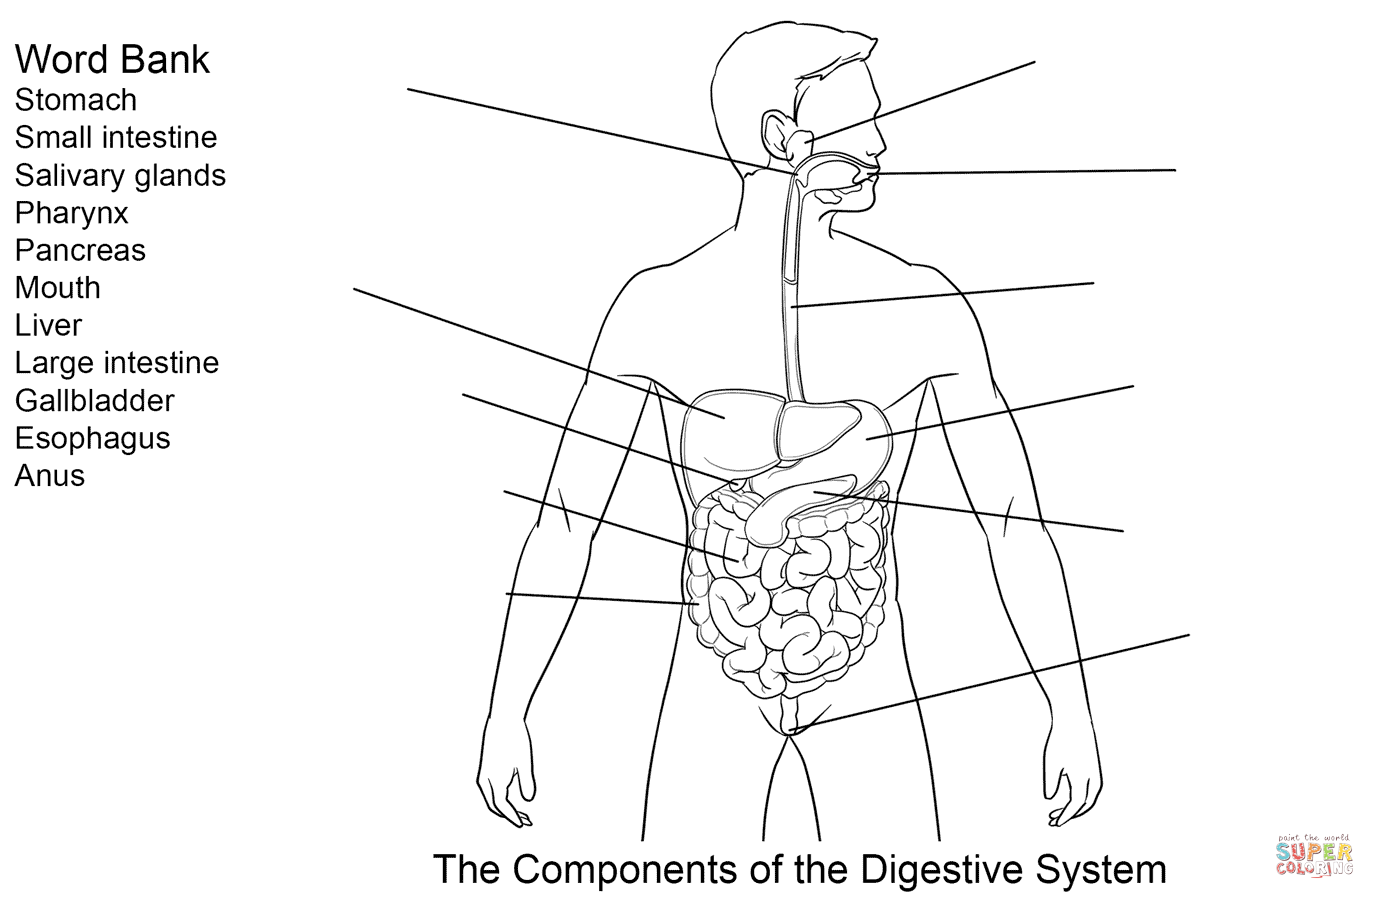 medium resolution of Components of Digestive System Worksheet Coloring page   Free Printable  Coloring Pages   Digestive system diagram